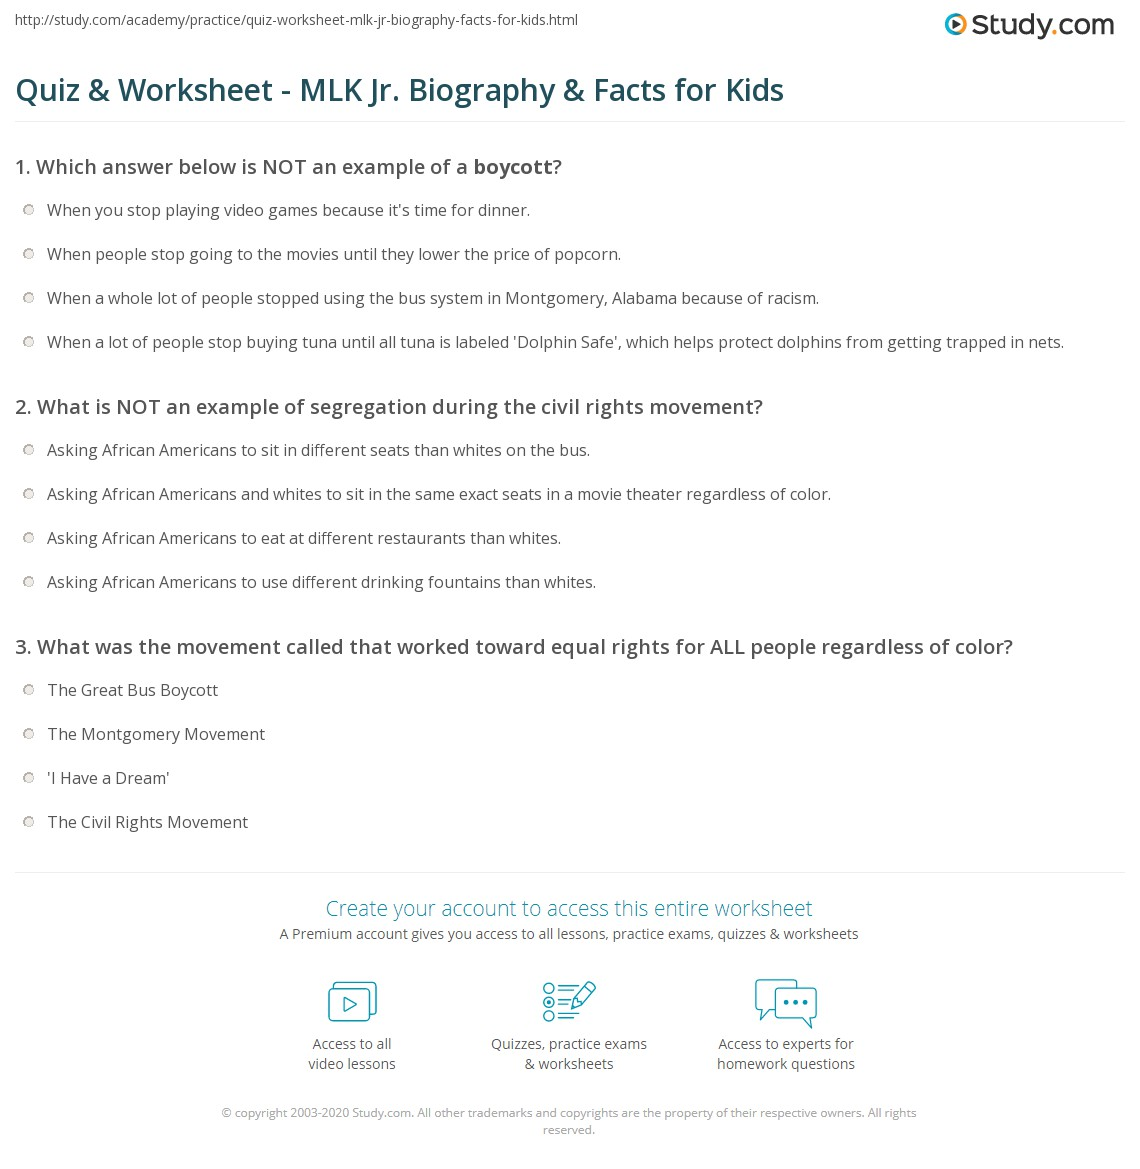 Quiz Worksheet Mlk Jr Biography Facts For Kids Study Com